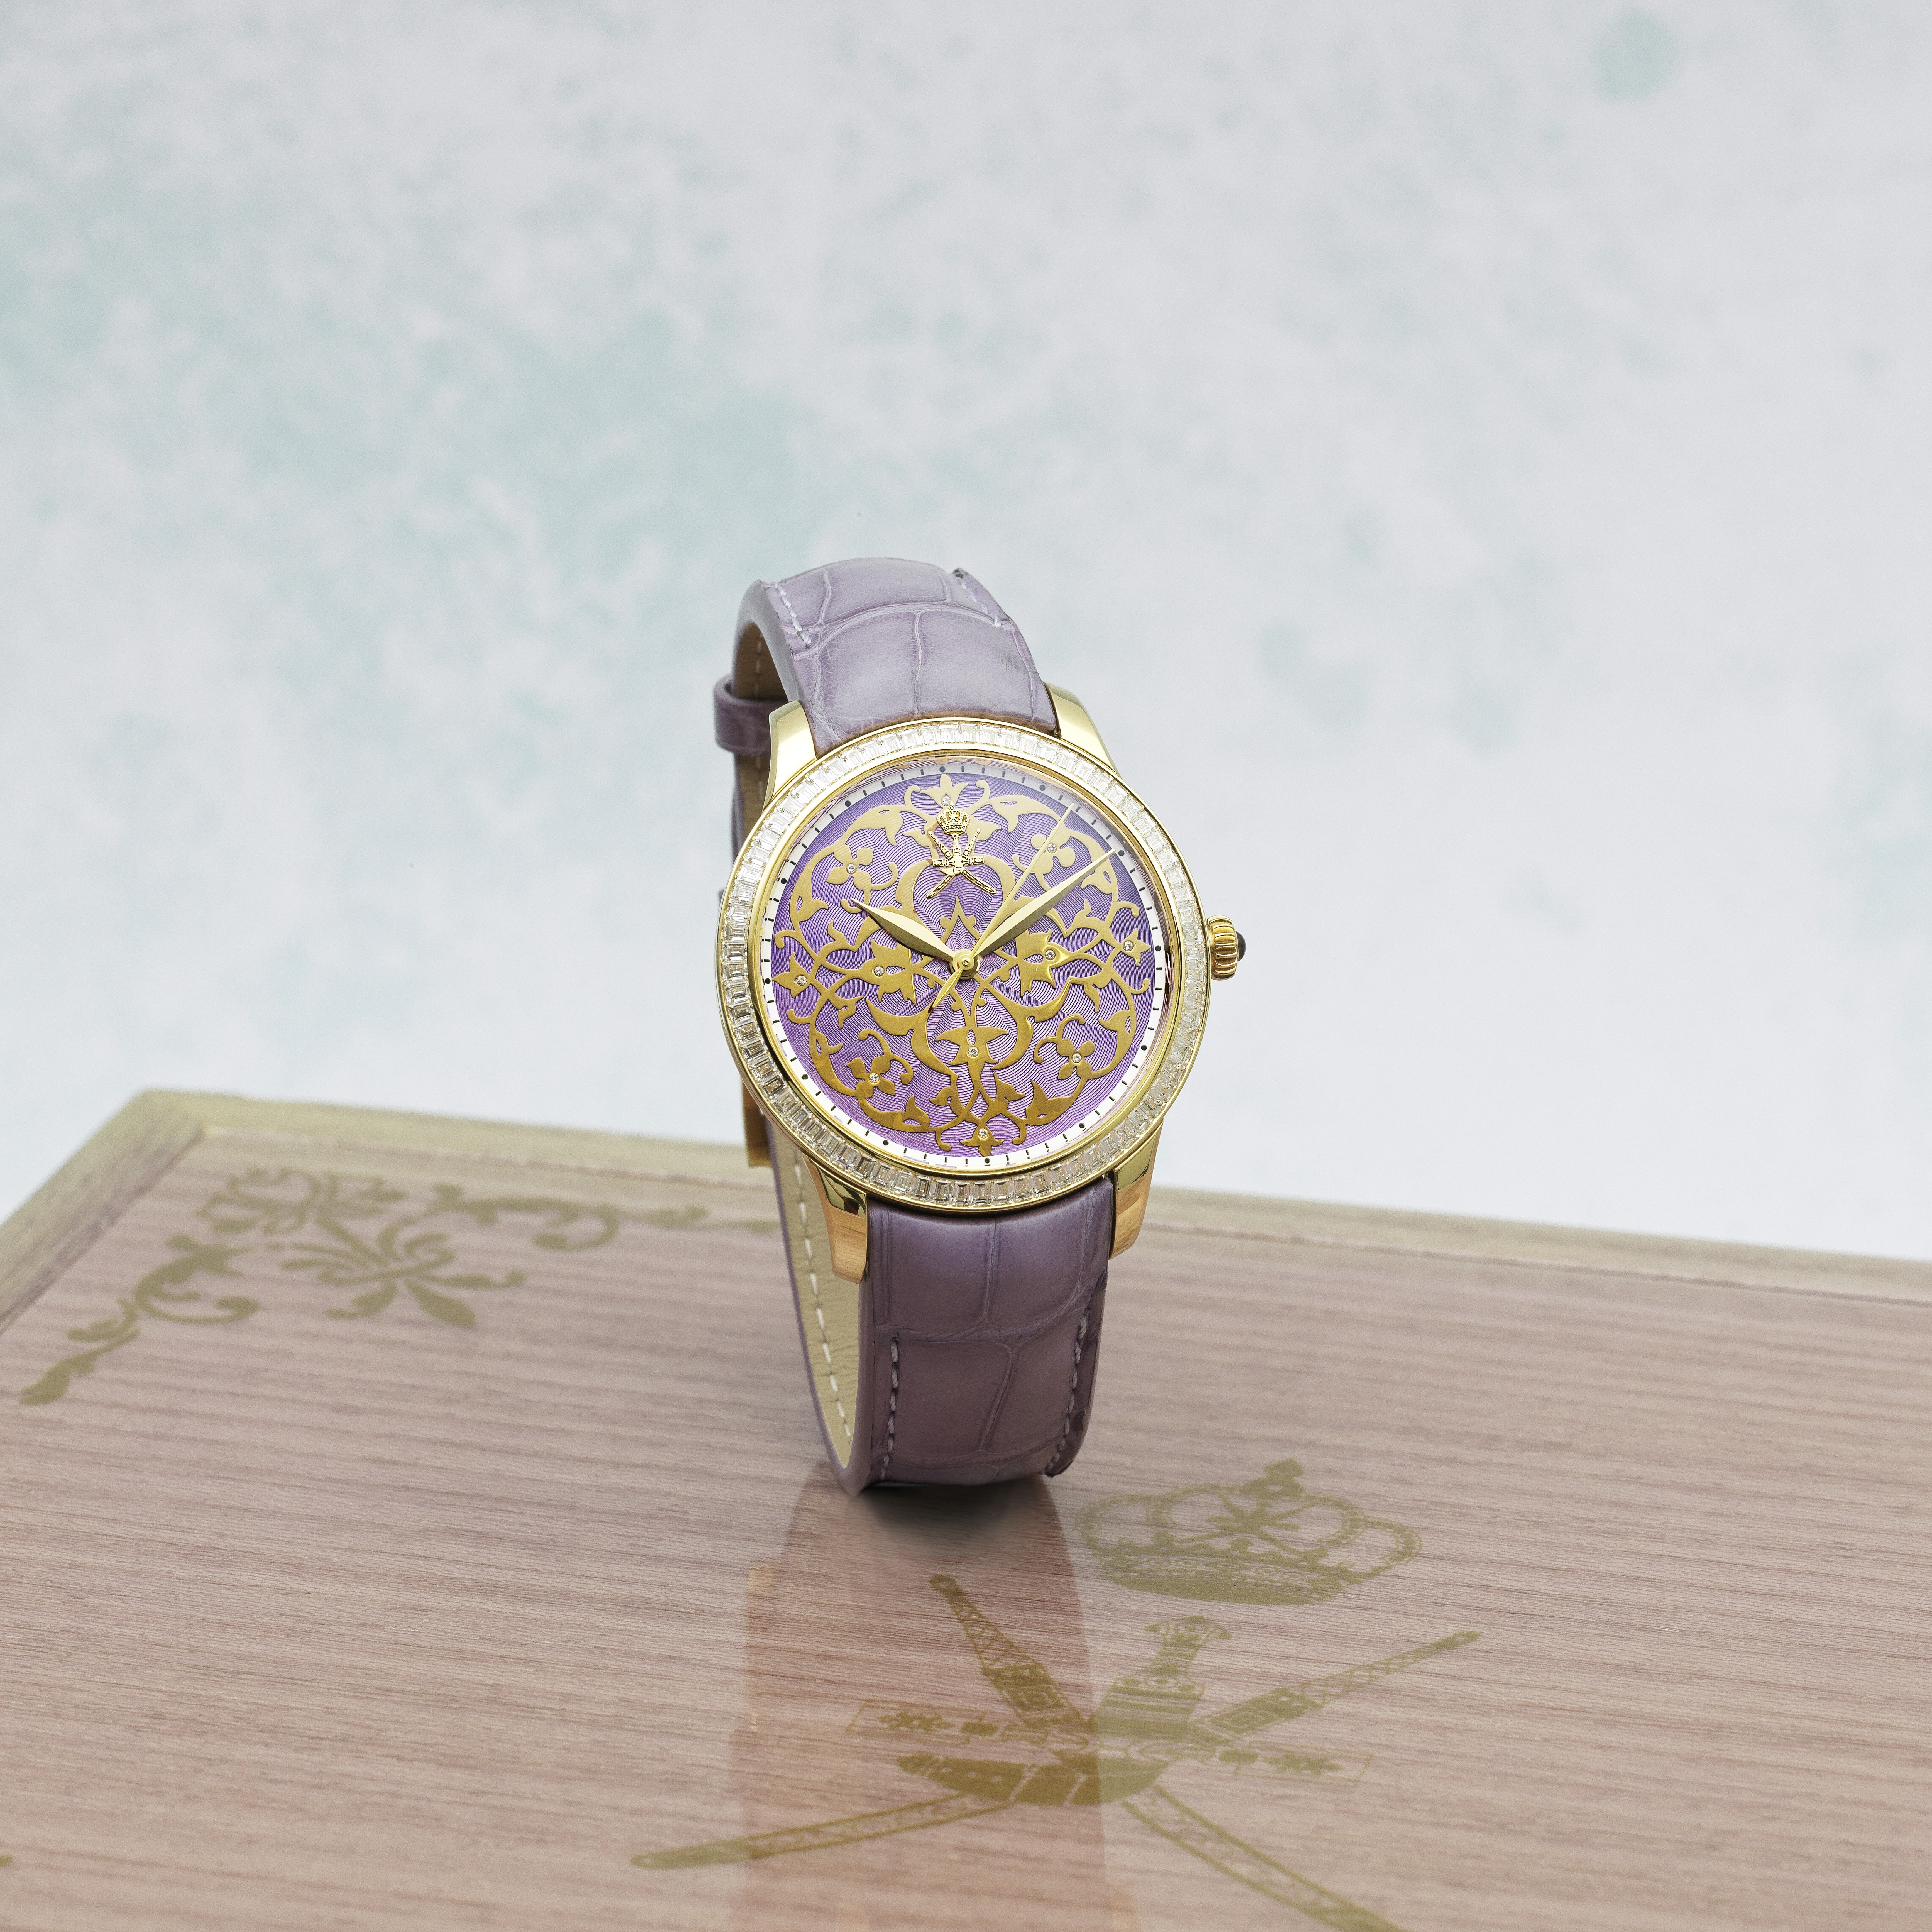 William & Son. An unusual 18K gold and diamond set automatic wristwatch with Khanjar emblem and e...